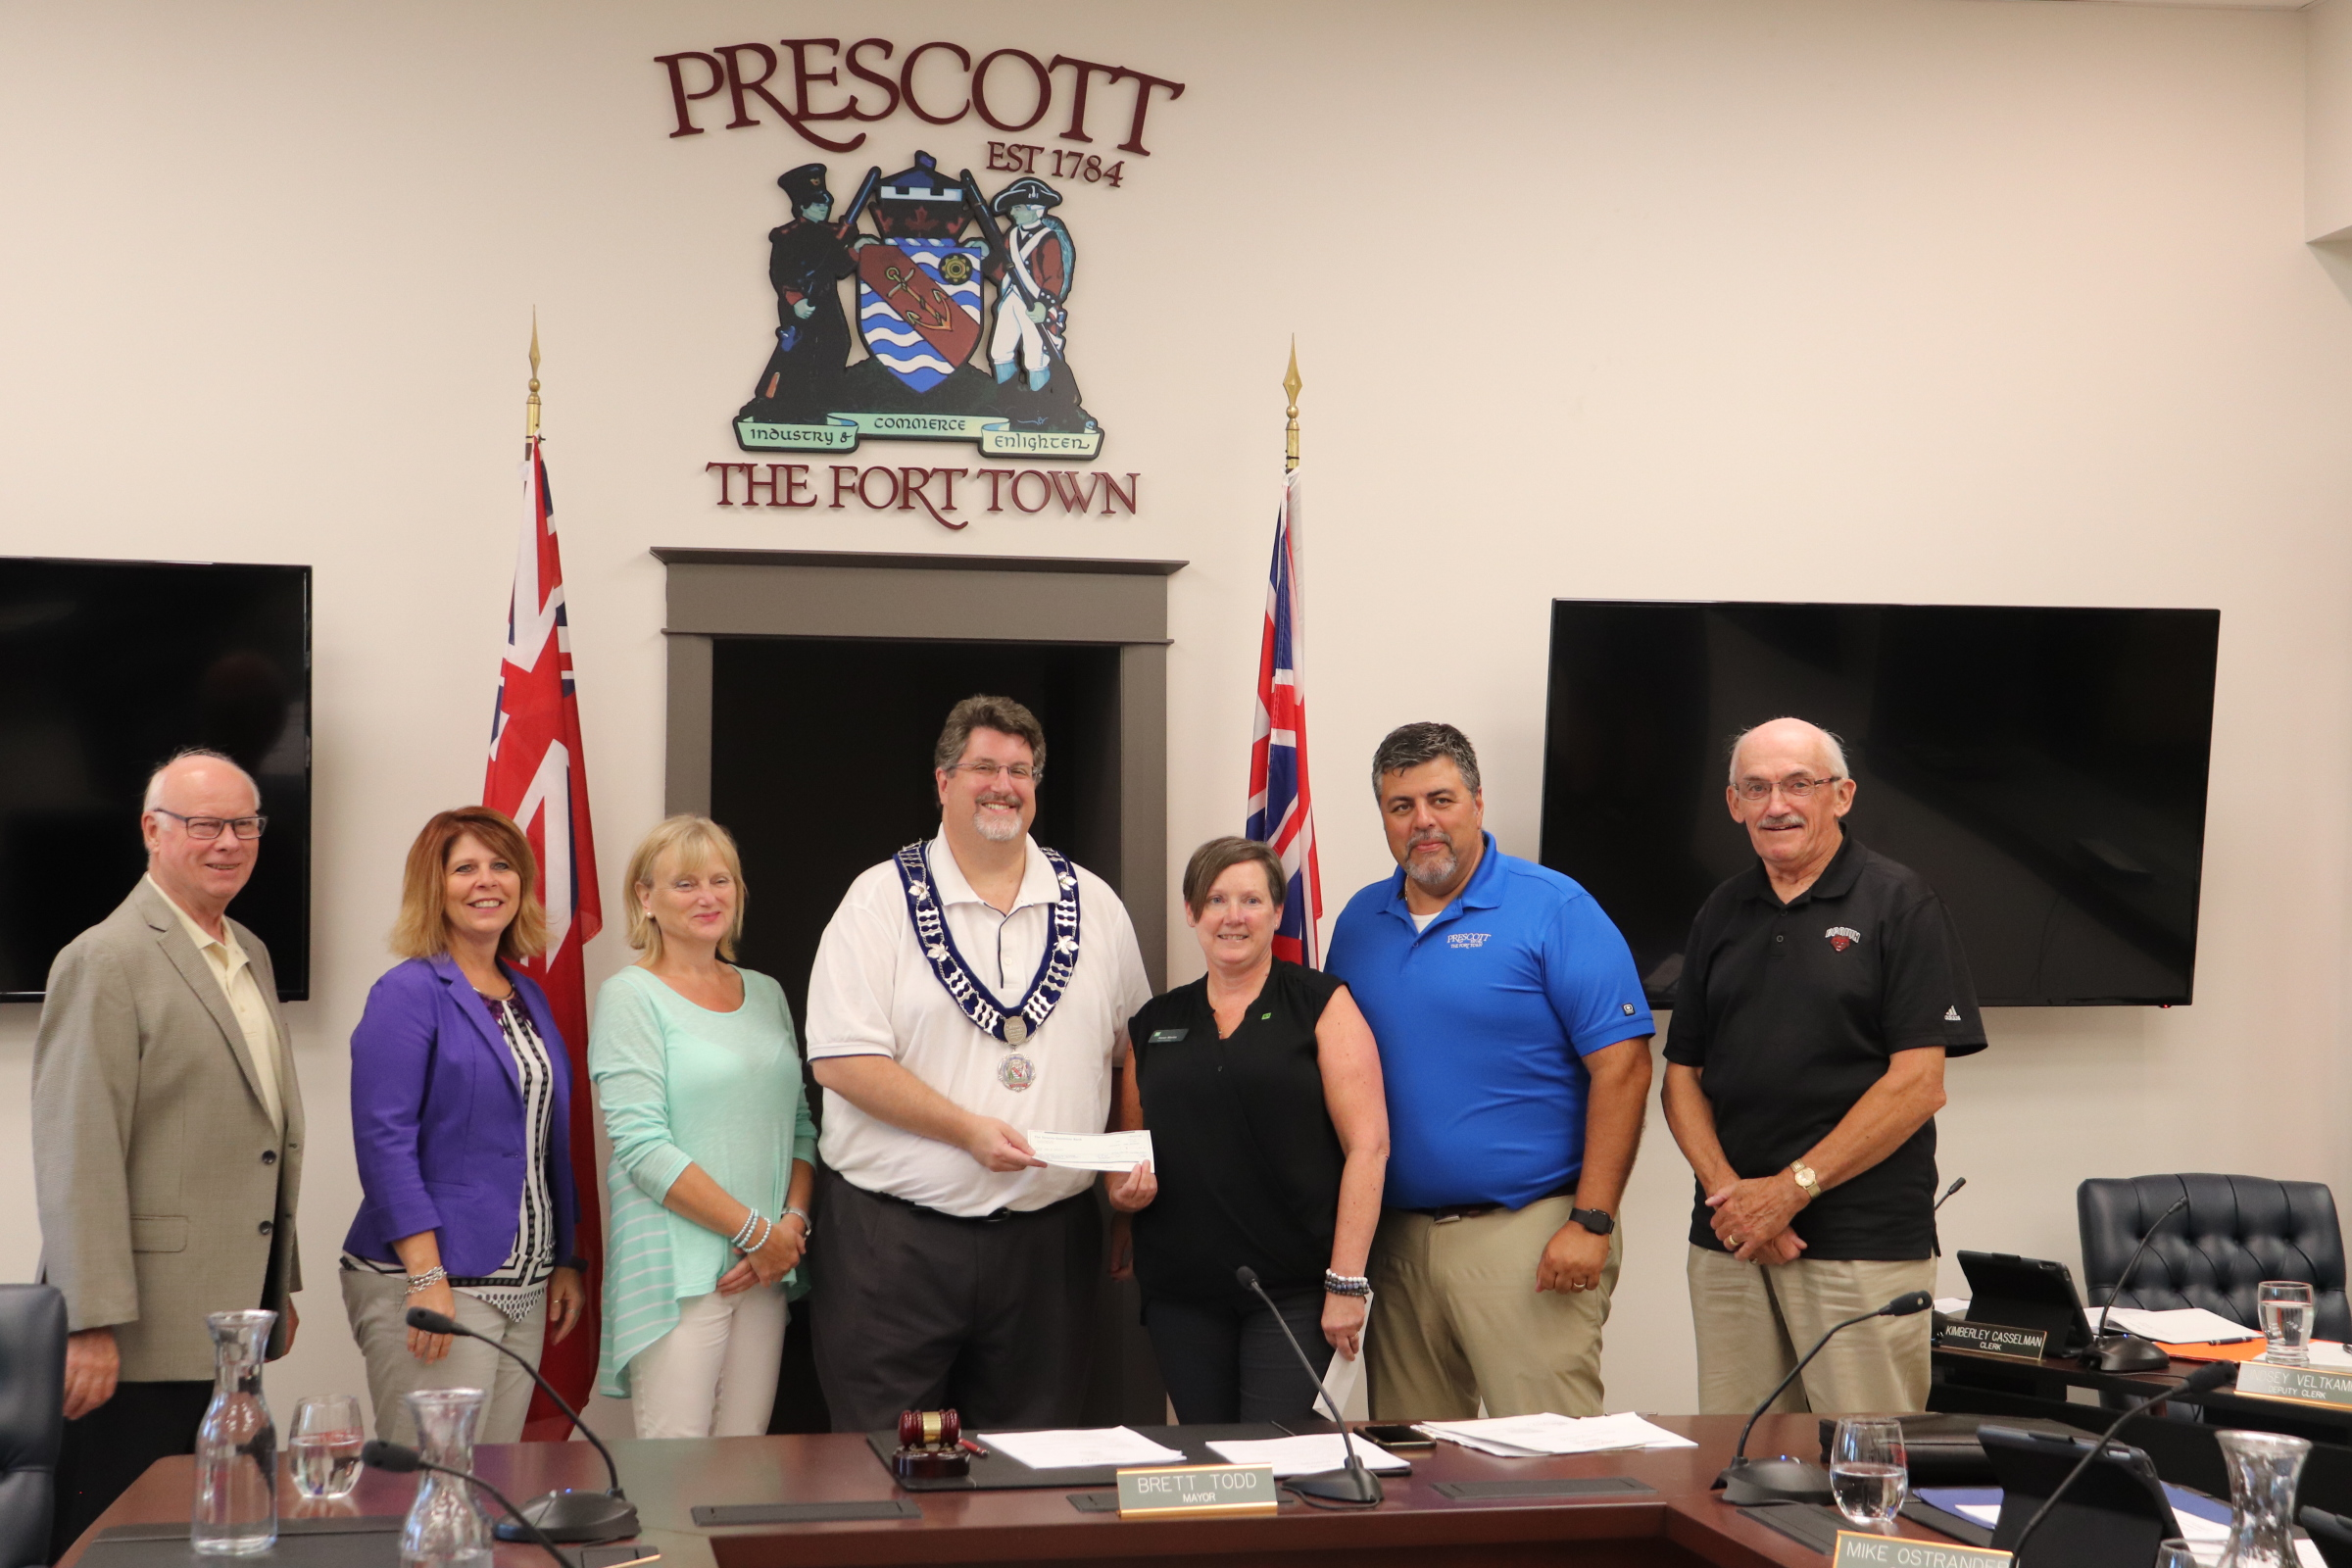 Prescott getting funding application ready for new arena